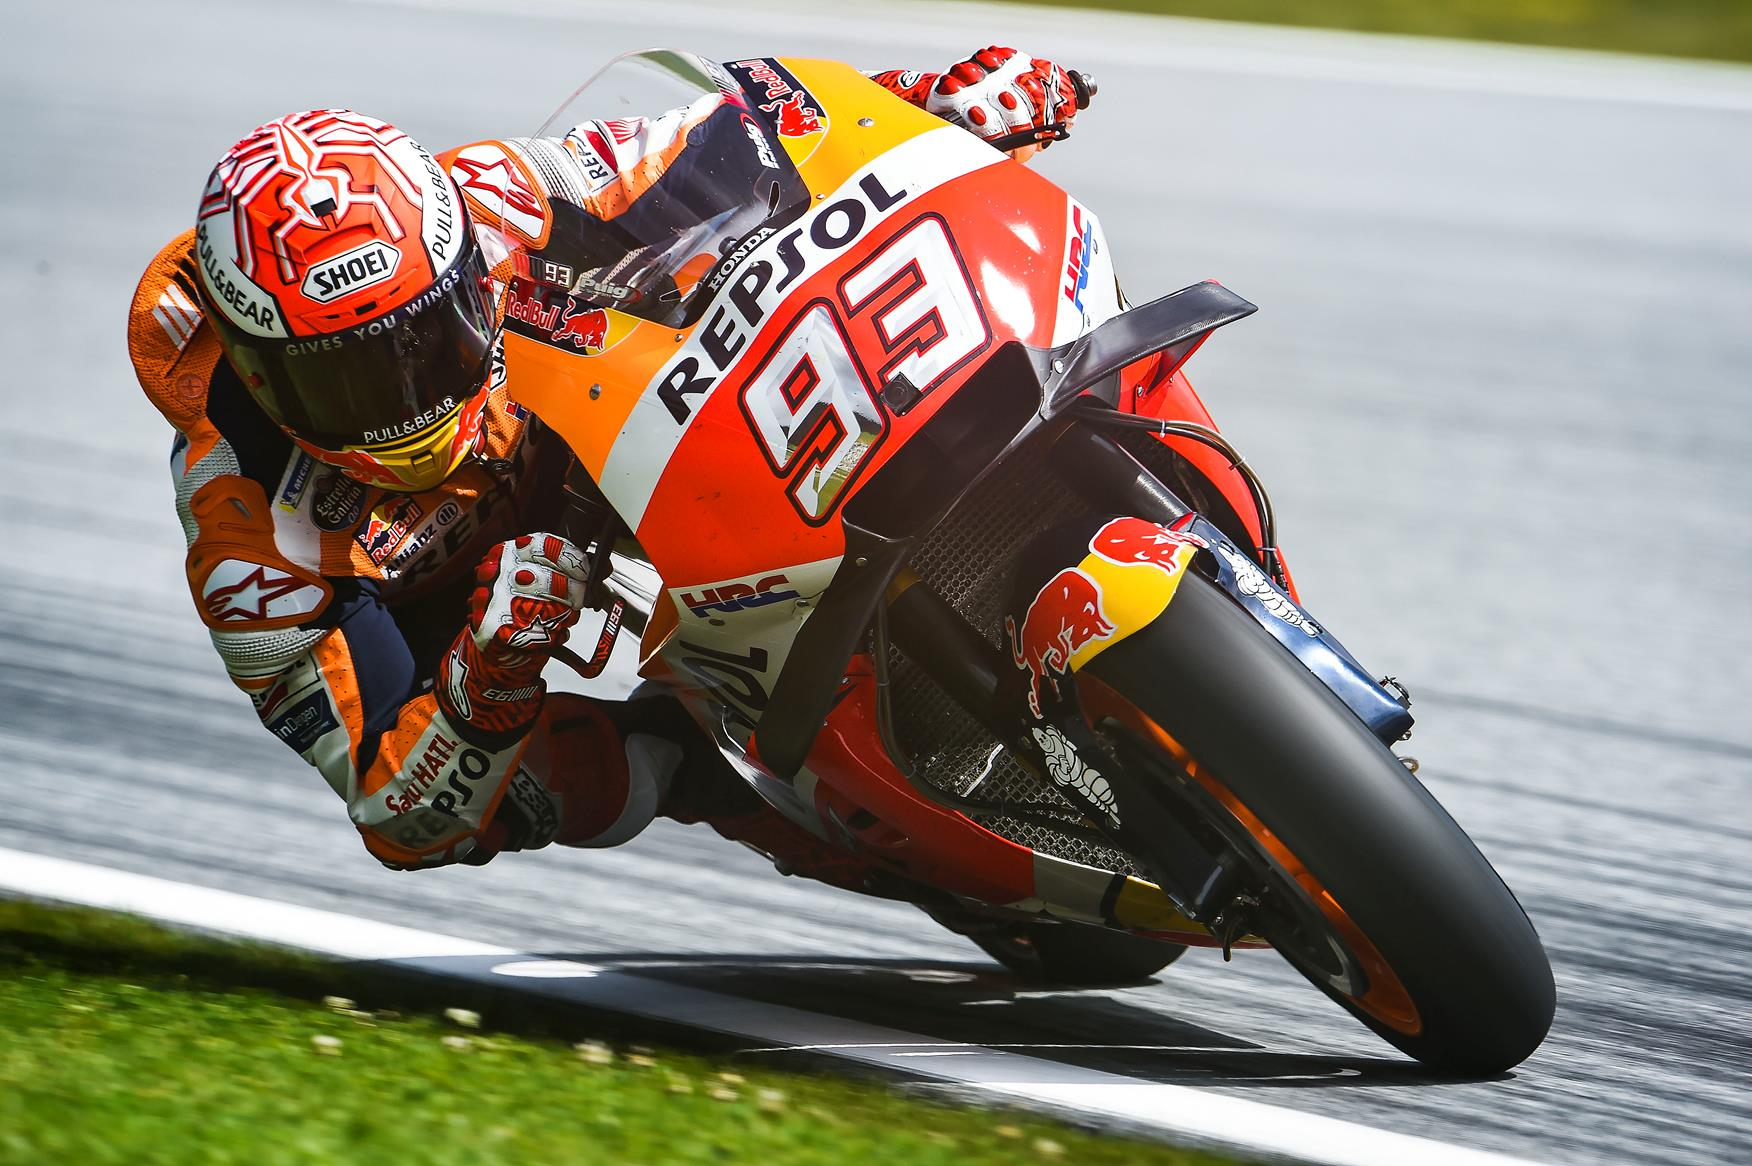 MotoGP director blames new track for cancellation of British Grand Prix